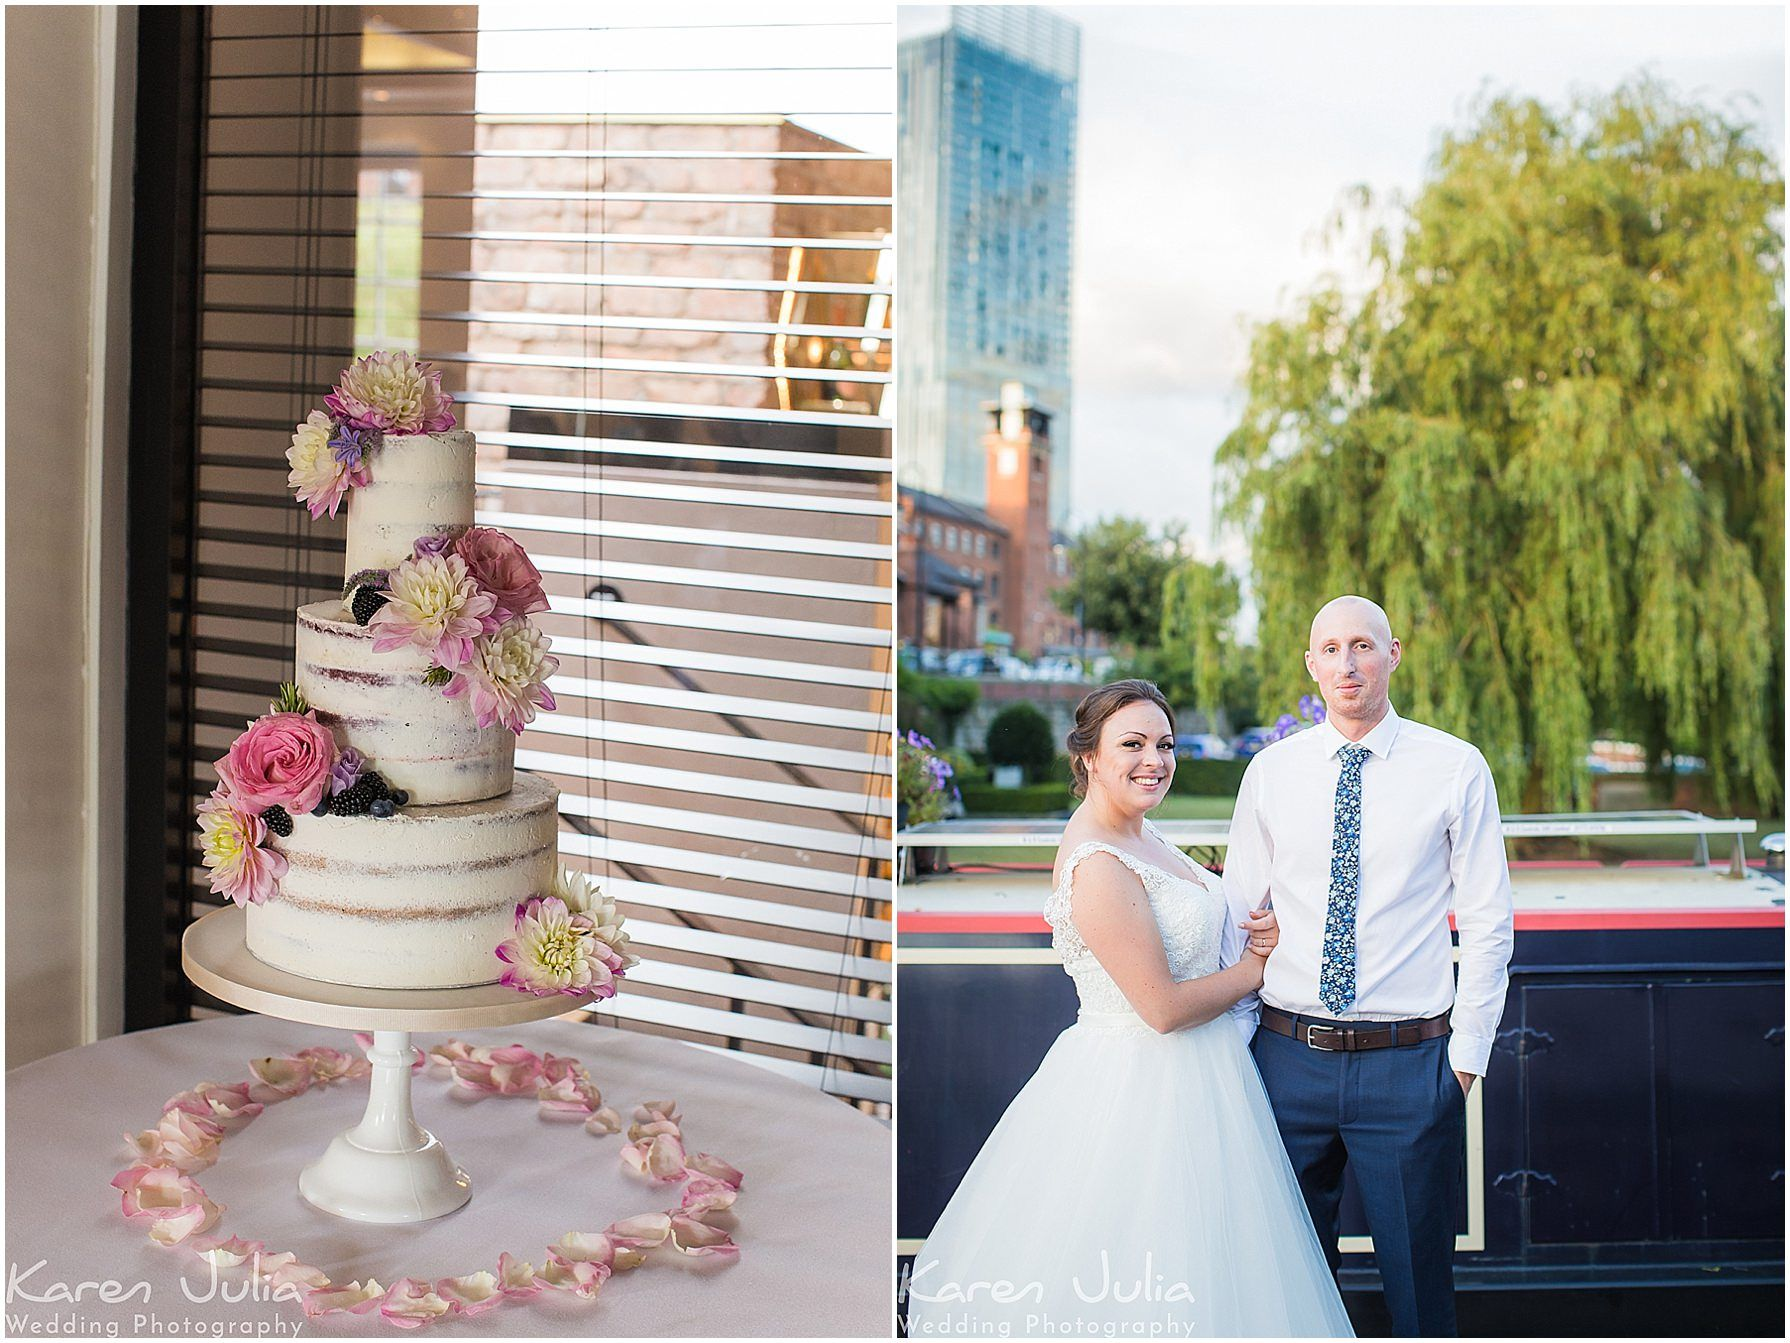 photos showing wedding cake in the Brindley Room, Castlefield Rooms and a couple portrait